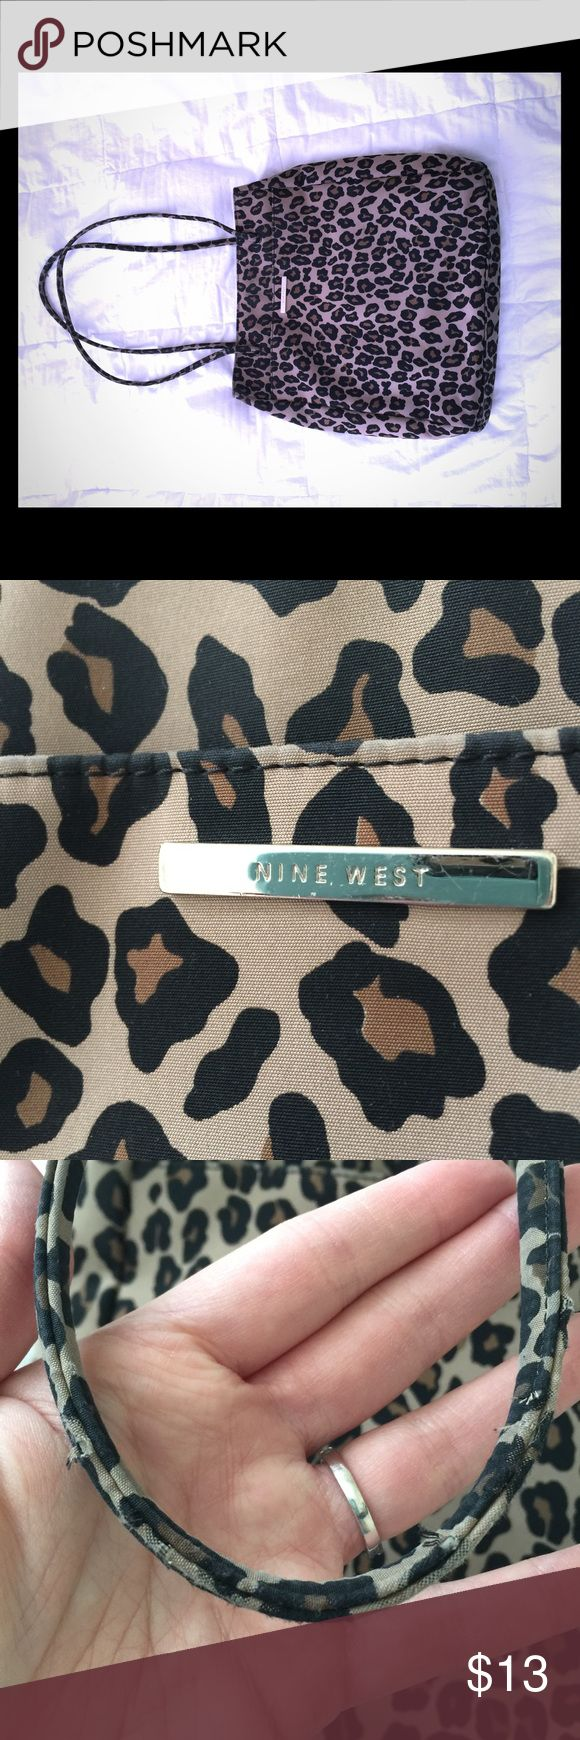 Nine West Animal Print Shoulder Bag This well-loved Nine West shoulder bag is in good used condition. All wear issues have been photographed, but purse is solid and has years of use left. Very light weight microfiber with magnetic closure and long shoulder straps. Interior is split into two sections, as pictured. Nine West Bags Shoulder Bags